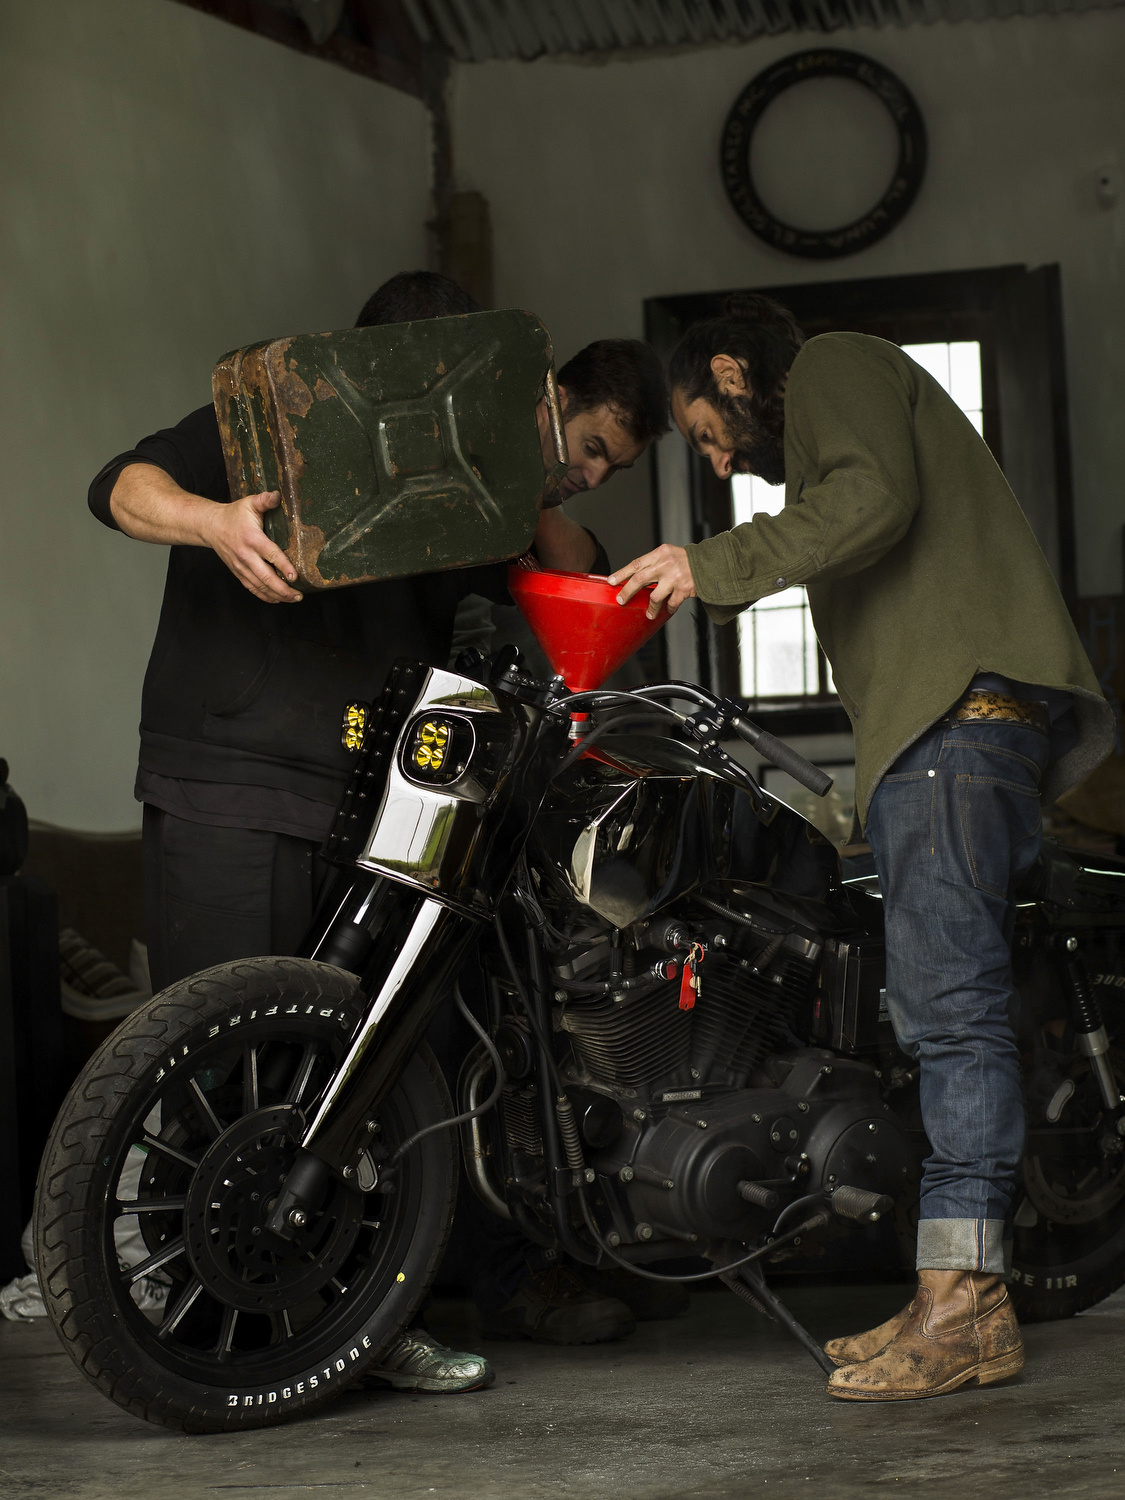 El Solitario's founder  David Borrás  (R), a friend of him (2ndR) and his mechanic Toni (L) fill the Malo/Bueno´s  tank  for the first time at El Solitario workshop garage on April 30, 2015 in Galician Rias Baixas, Spain. Ex commodity trader David Borrás and his wife Valeria Líbano founded  El Solitario Motorcycles  as a personal bet to offer their own  style  of conceiving motorcycles and the fashion market related with them.  Malo/Bueno  is the customization of a 1200cc  Harley Davidson Sportster . Cast sculptors, a community trader and a musician have something in common: they have made the passion of customizing motorbikes their own business. Valtoron Sculptured Motorcycles, Café Racer Obsession and El Solitario Motorcycles are the dreams-come-true of the Delgado Brothers, Federico Ruiz and David Borrás.